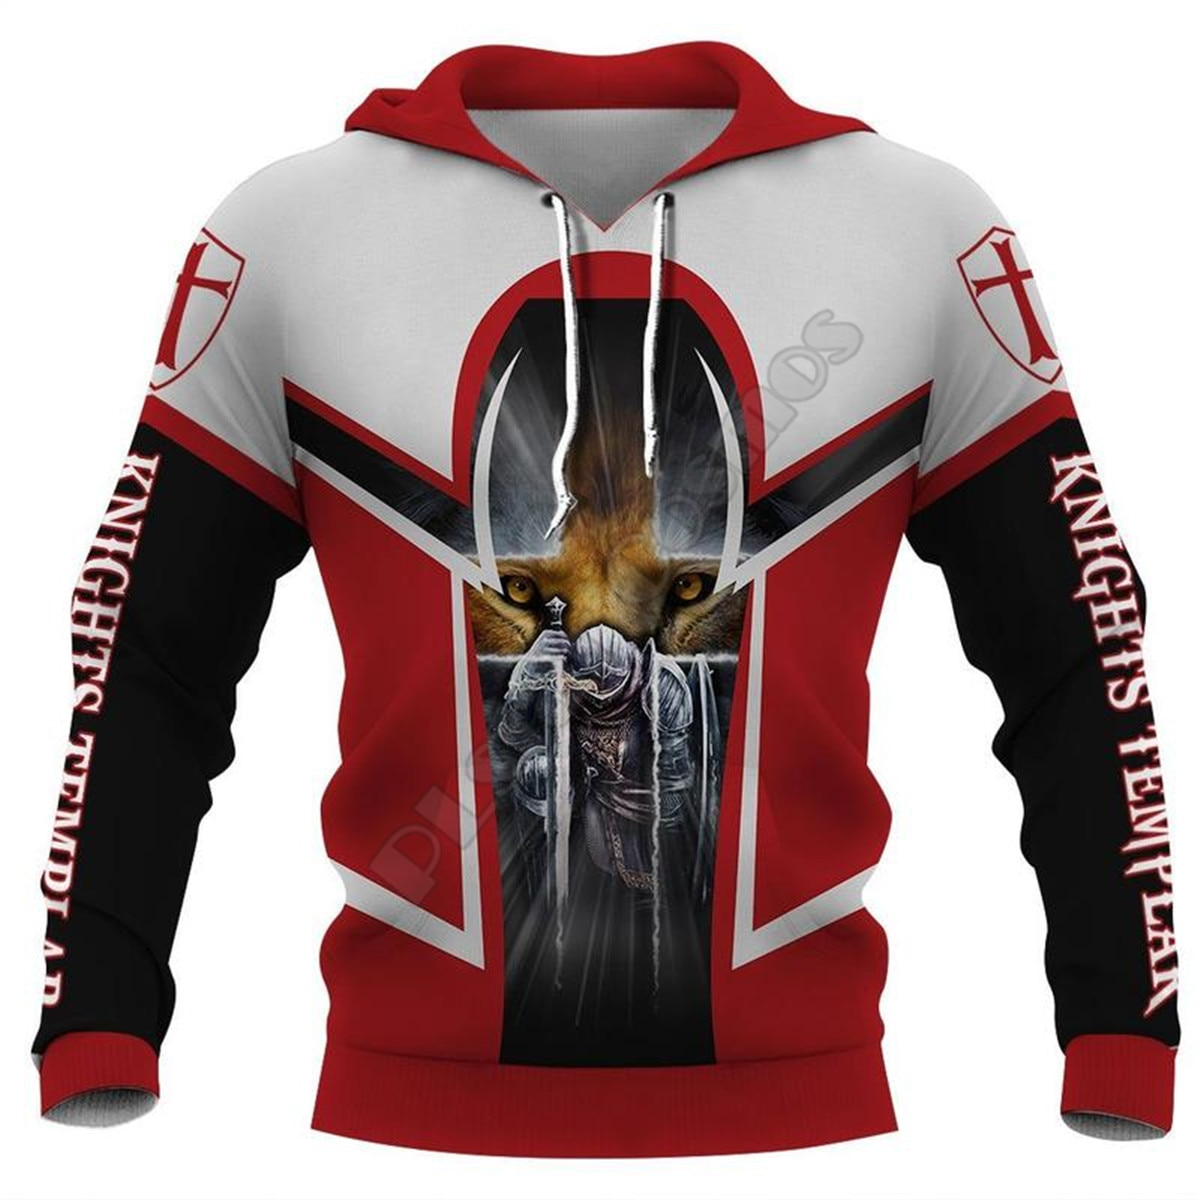 Knight Templar Armor 3D All Over Printed Hoodies Fashion Pullover Men For Women Sweatshirts Sweater Cosplay Costumes 11